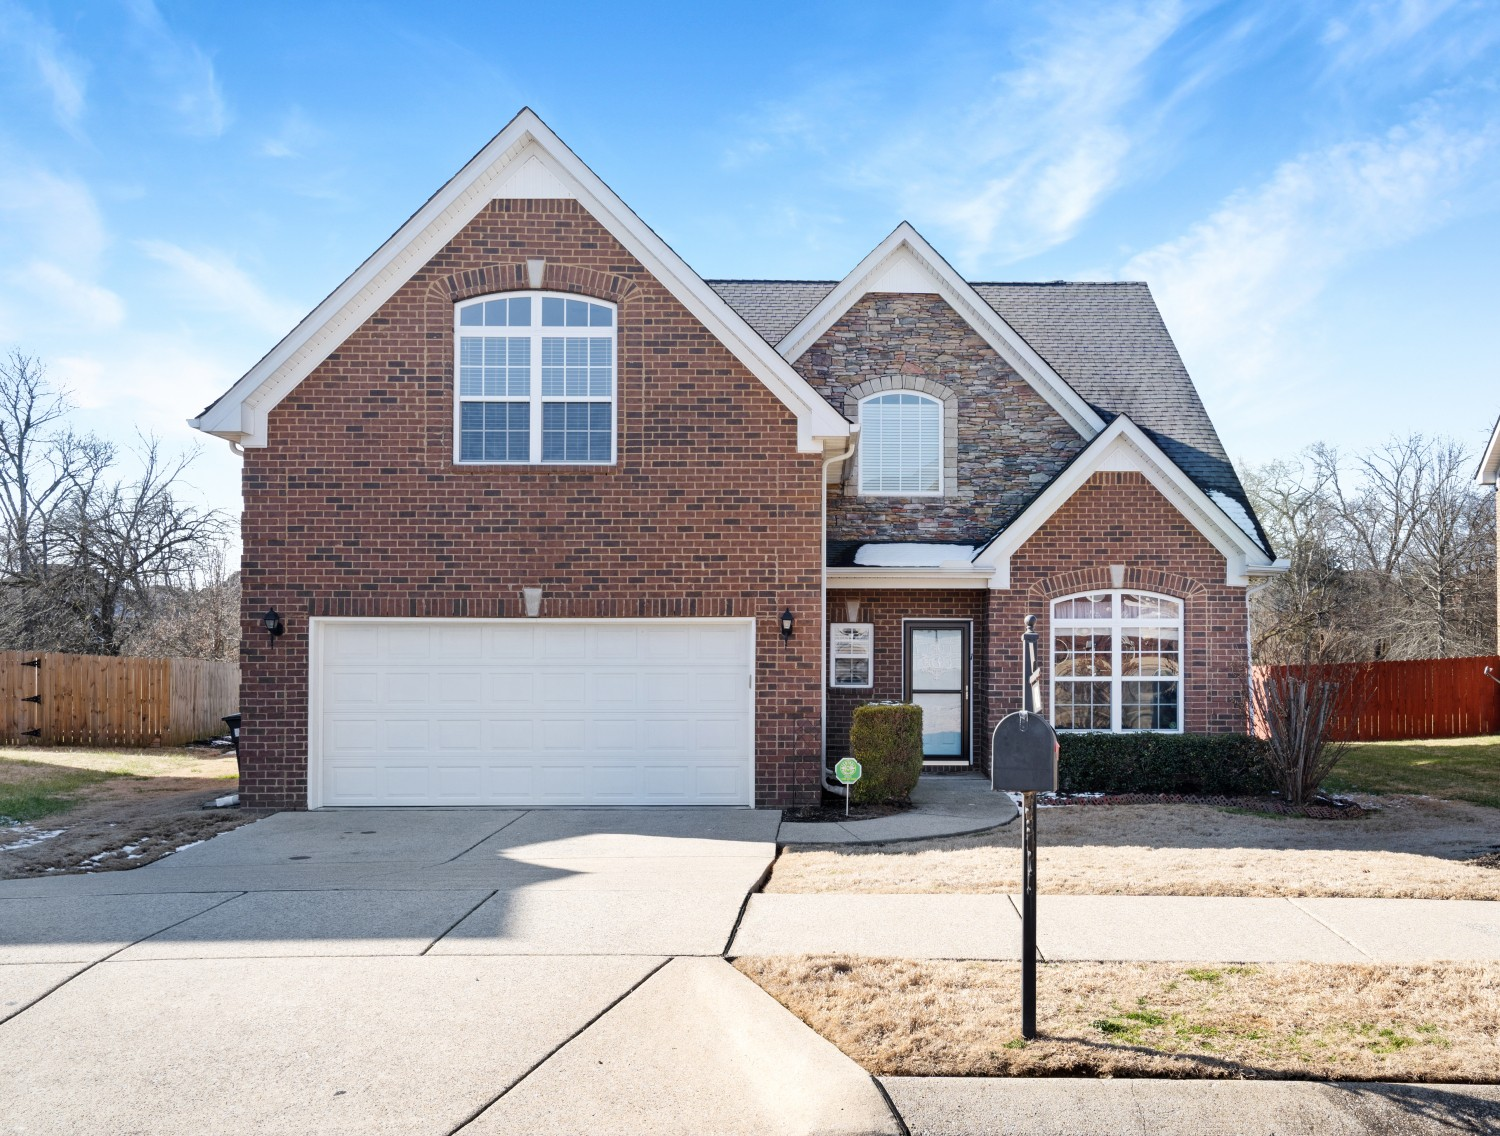 All Brick Home! 4 Bedrooms and 3.5 Bathrooms. Master Bedroom downstairs and 3 Bedrooms upstairs! Formal Dining Room, Hardwood Floors downstairs (Dining Room, Kitchen, Living Room, Hallways),Woodburning Fireplace, Tray Ceiling, Jack-in-Jill Bathrooms, Security System, Patio, Backs up to the Beautiful Community Park! Two Community Parks/Playground,  and Walking Trail in this community. The seller is currently building a new home!